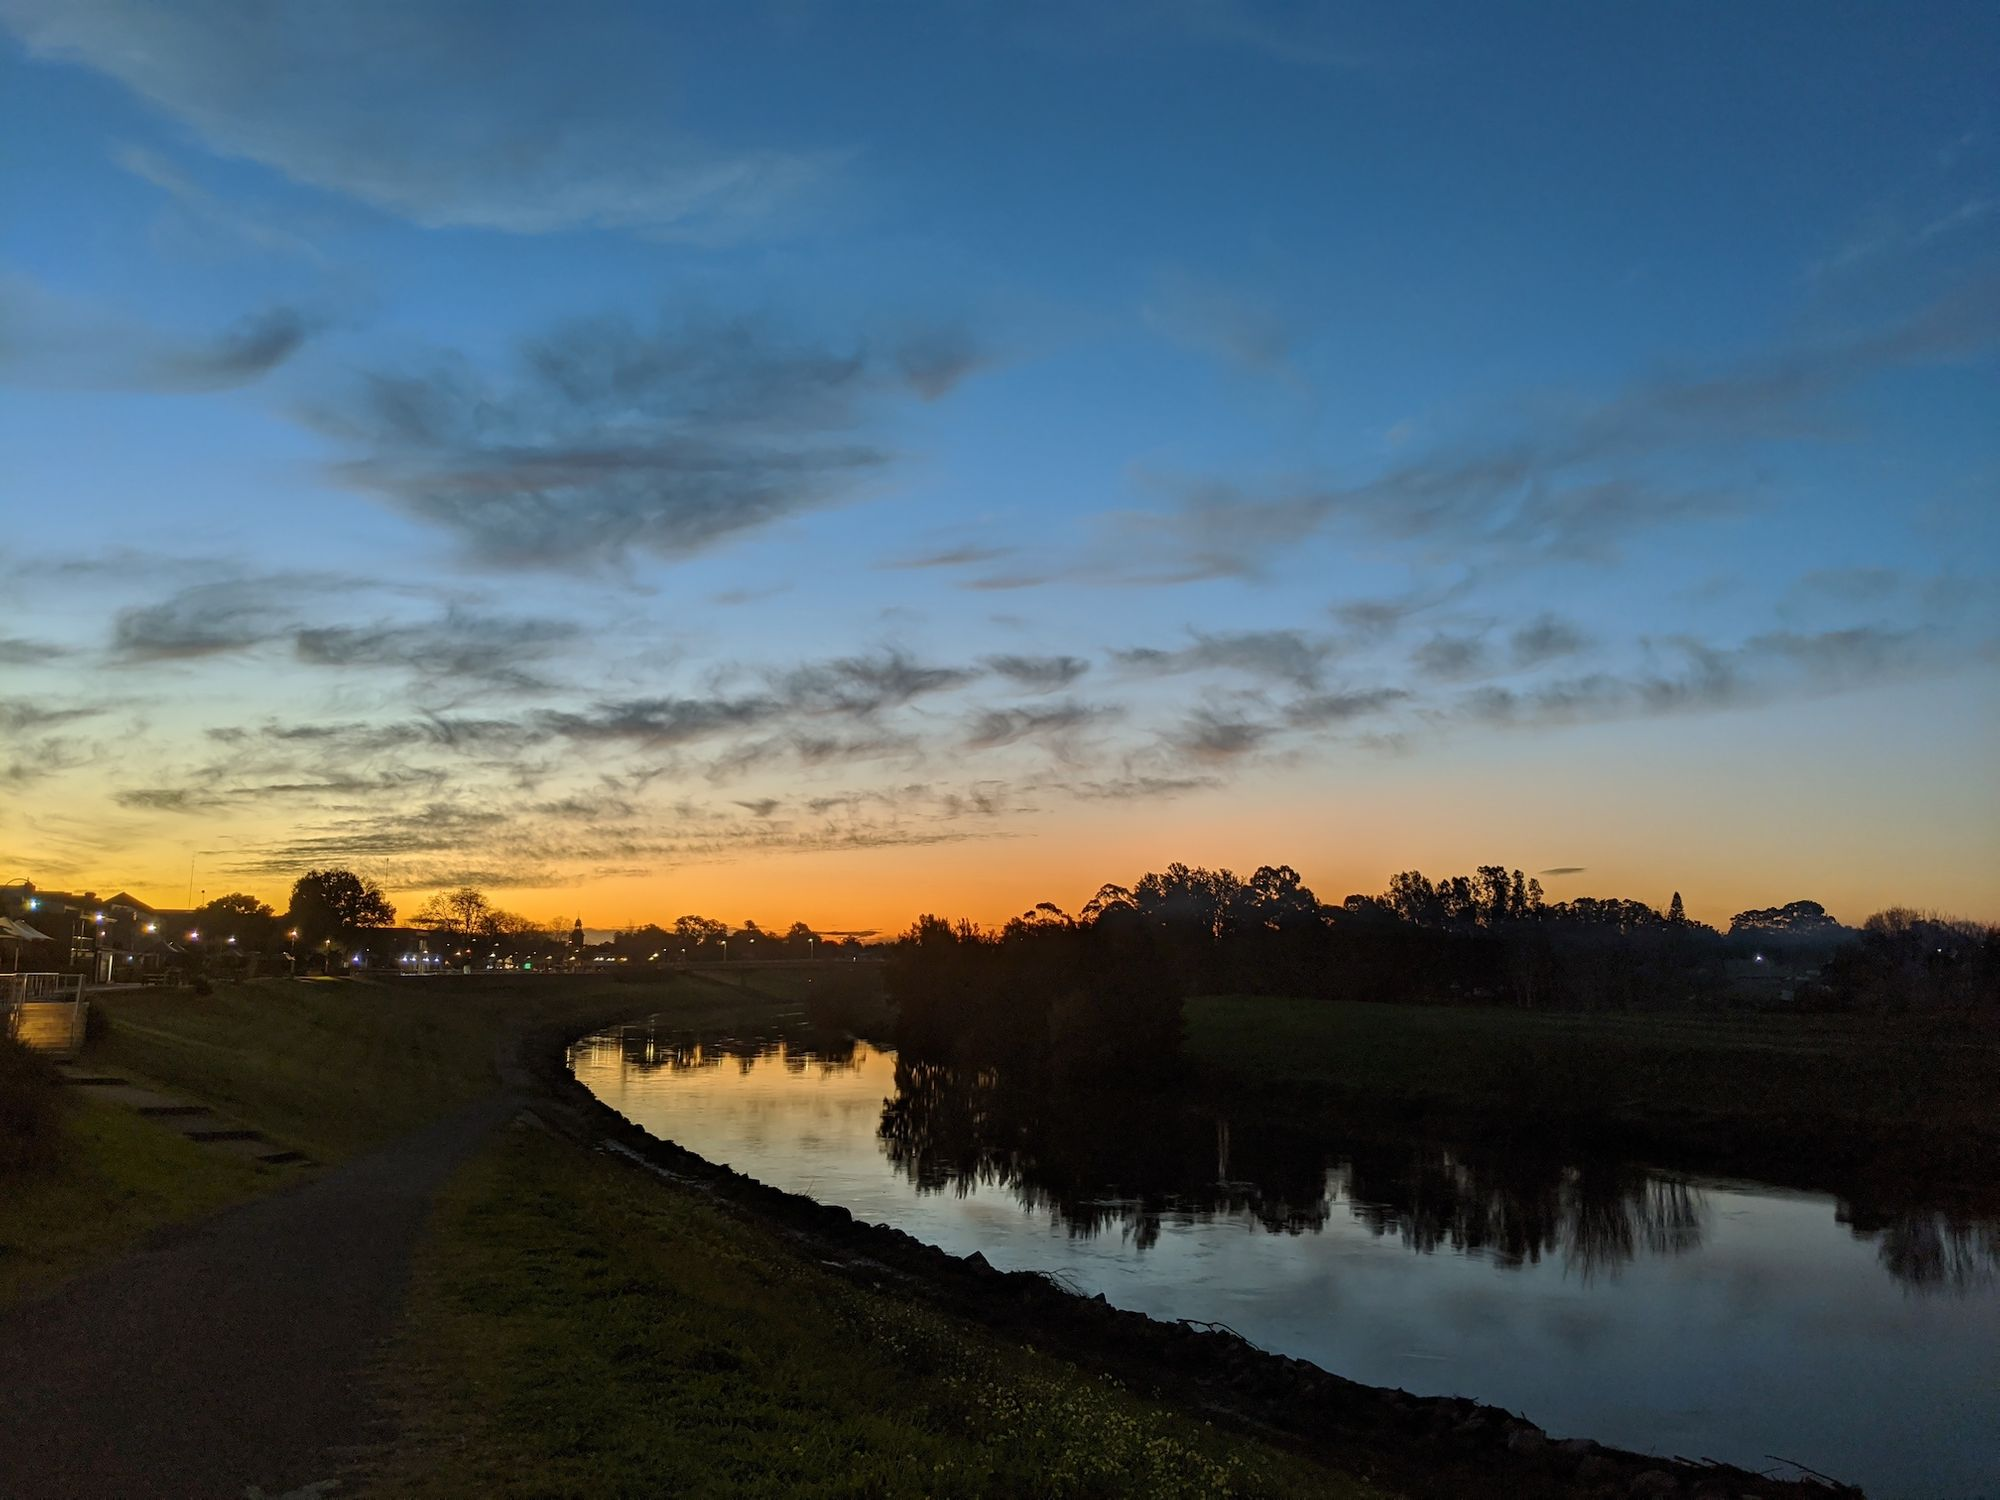 River foreground, sunset background, path on the left of the river.